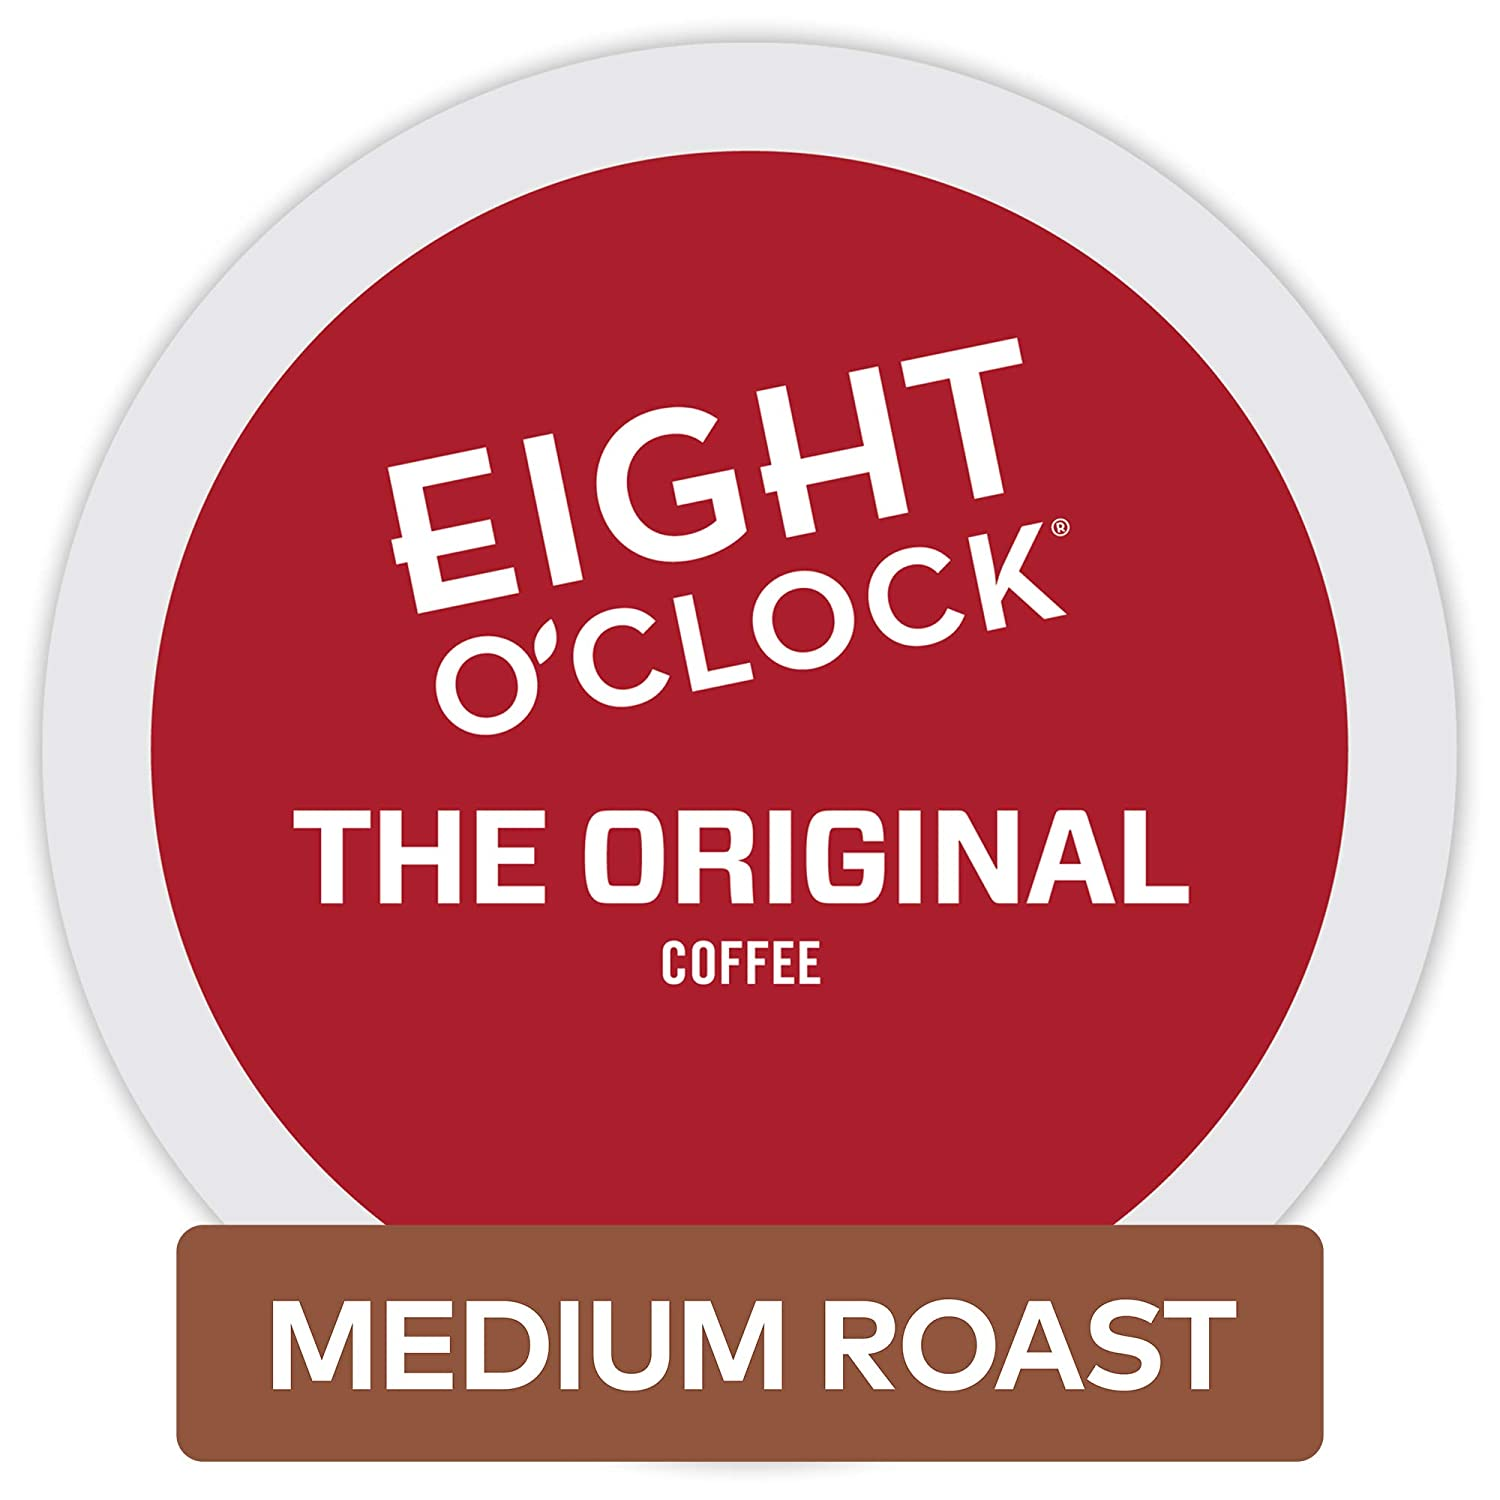 Eight O'Clock Coffee The Original, Single Serve Coffee K-Cup Pod, Medium Roast, 12 count, Pack of 6